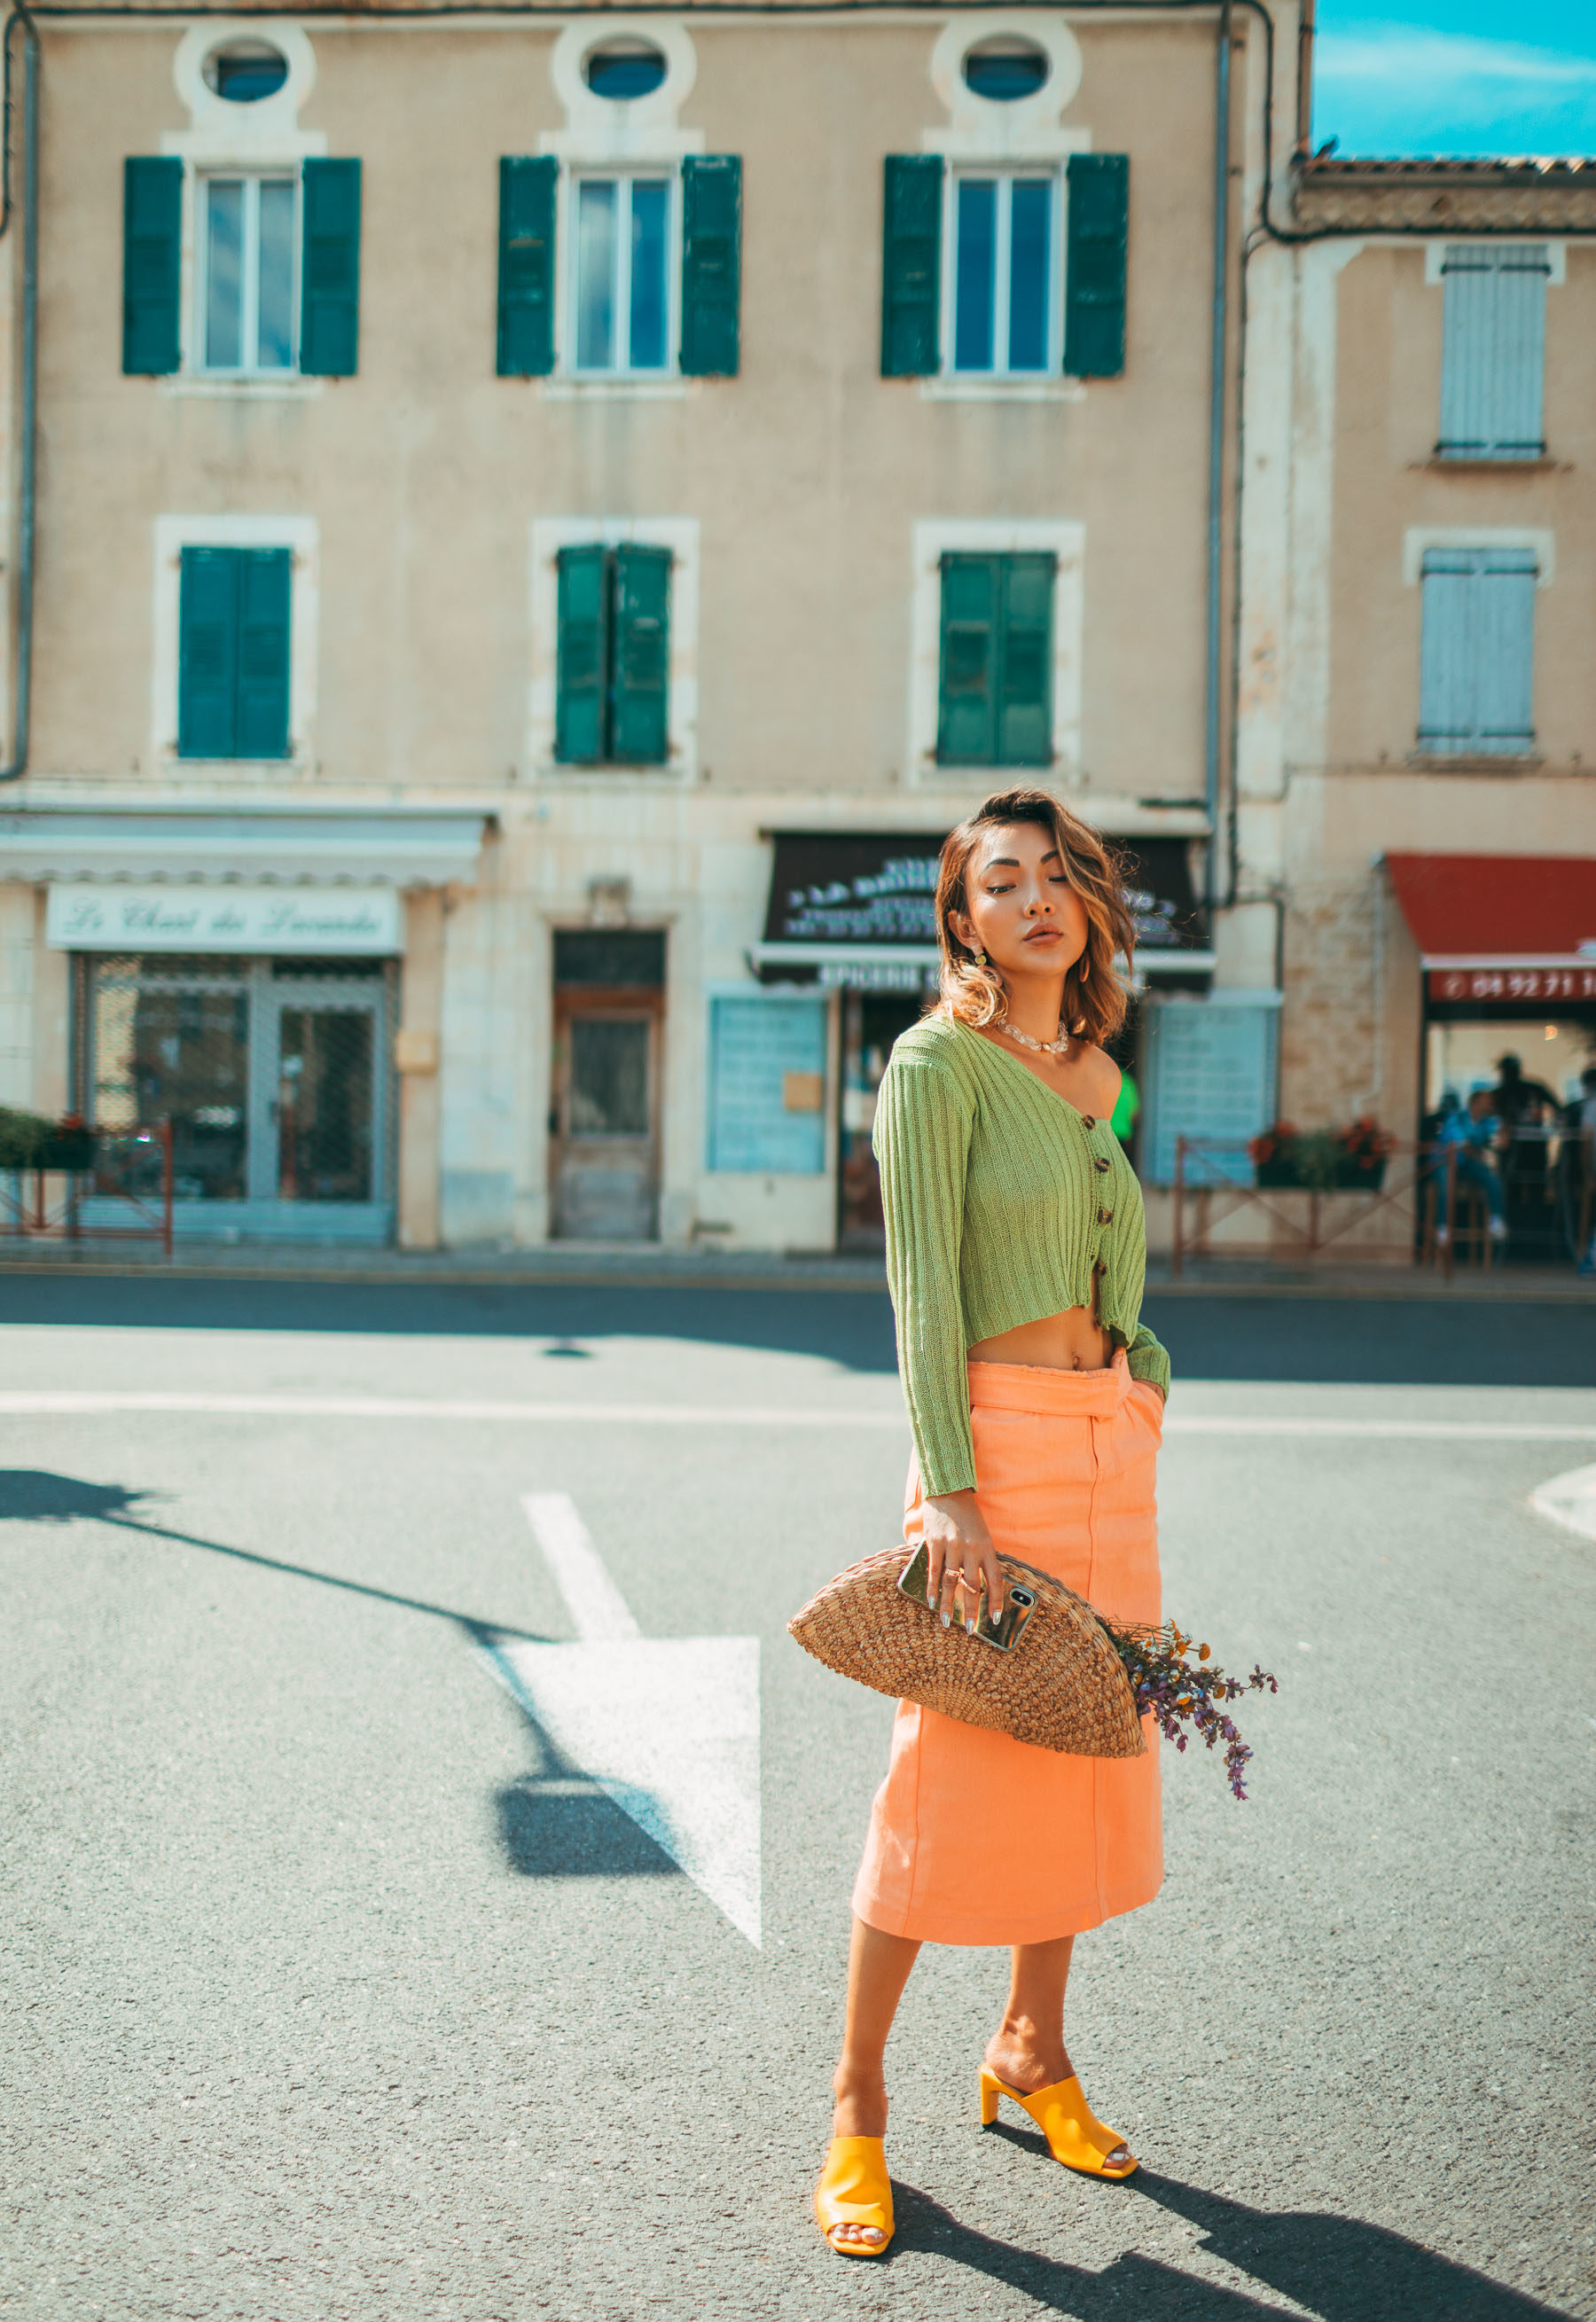 Preconceptions to Throw Away and Live Life at Your Own Pace // color block outfit, fashion in provence // Notjessfashion.com